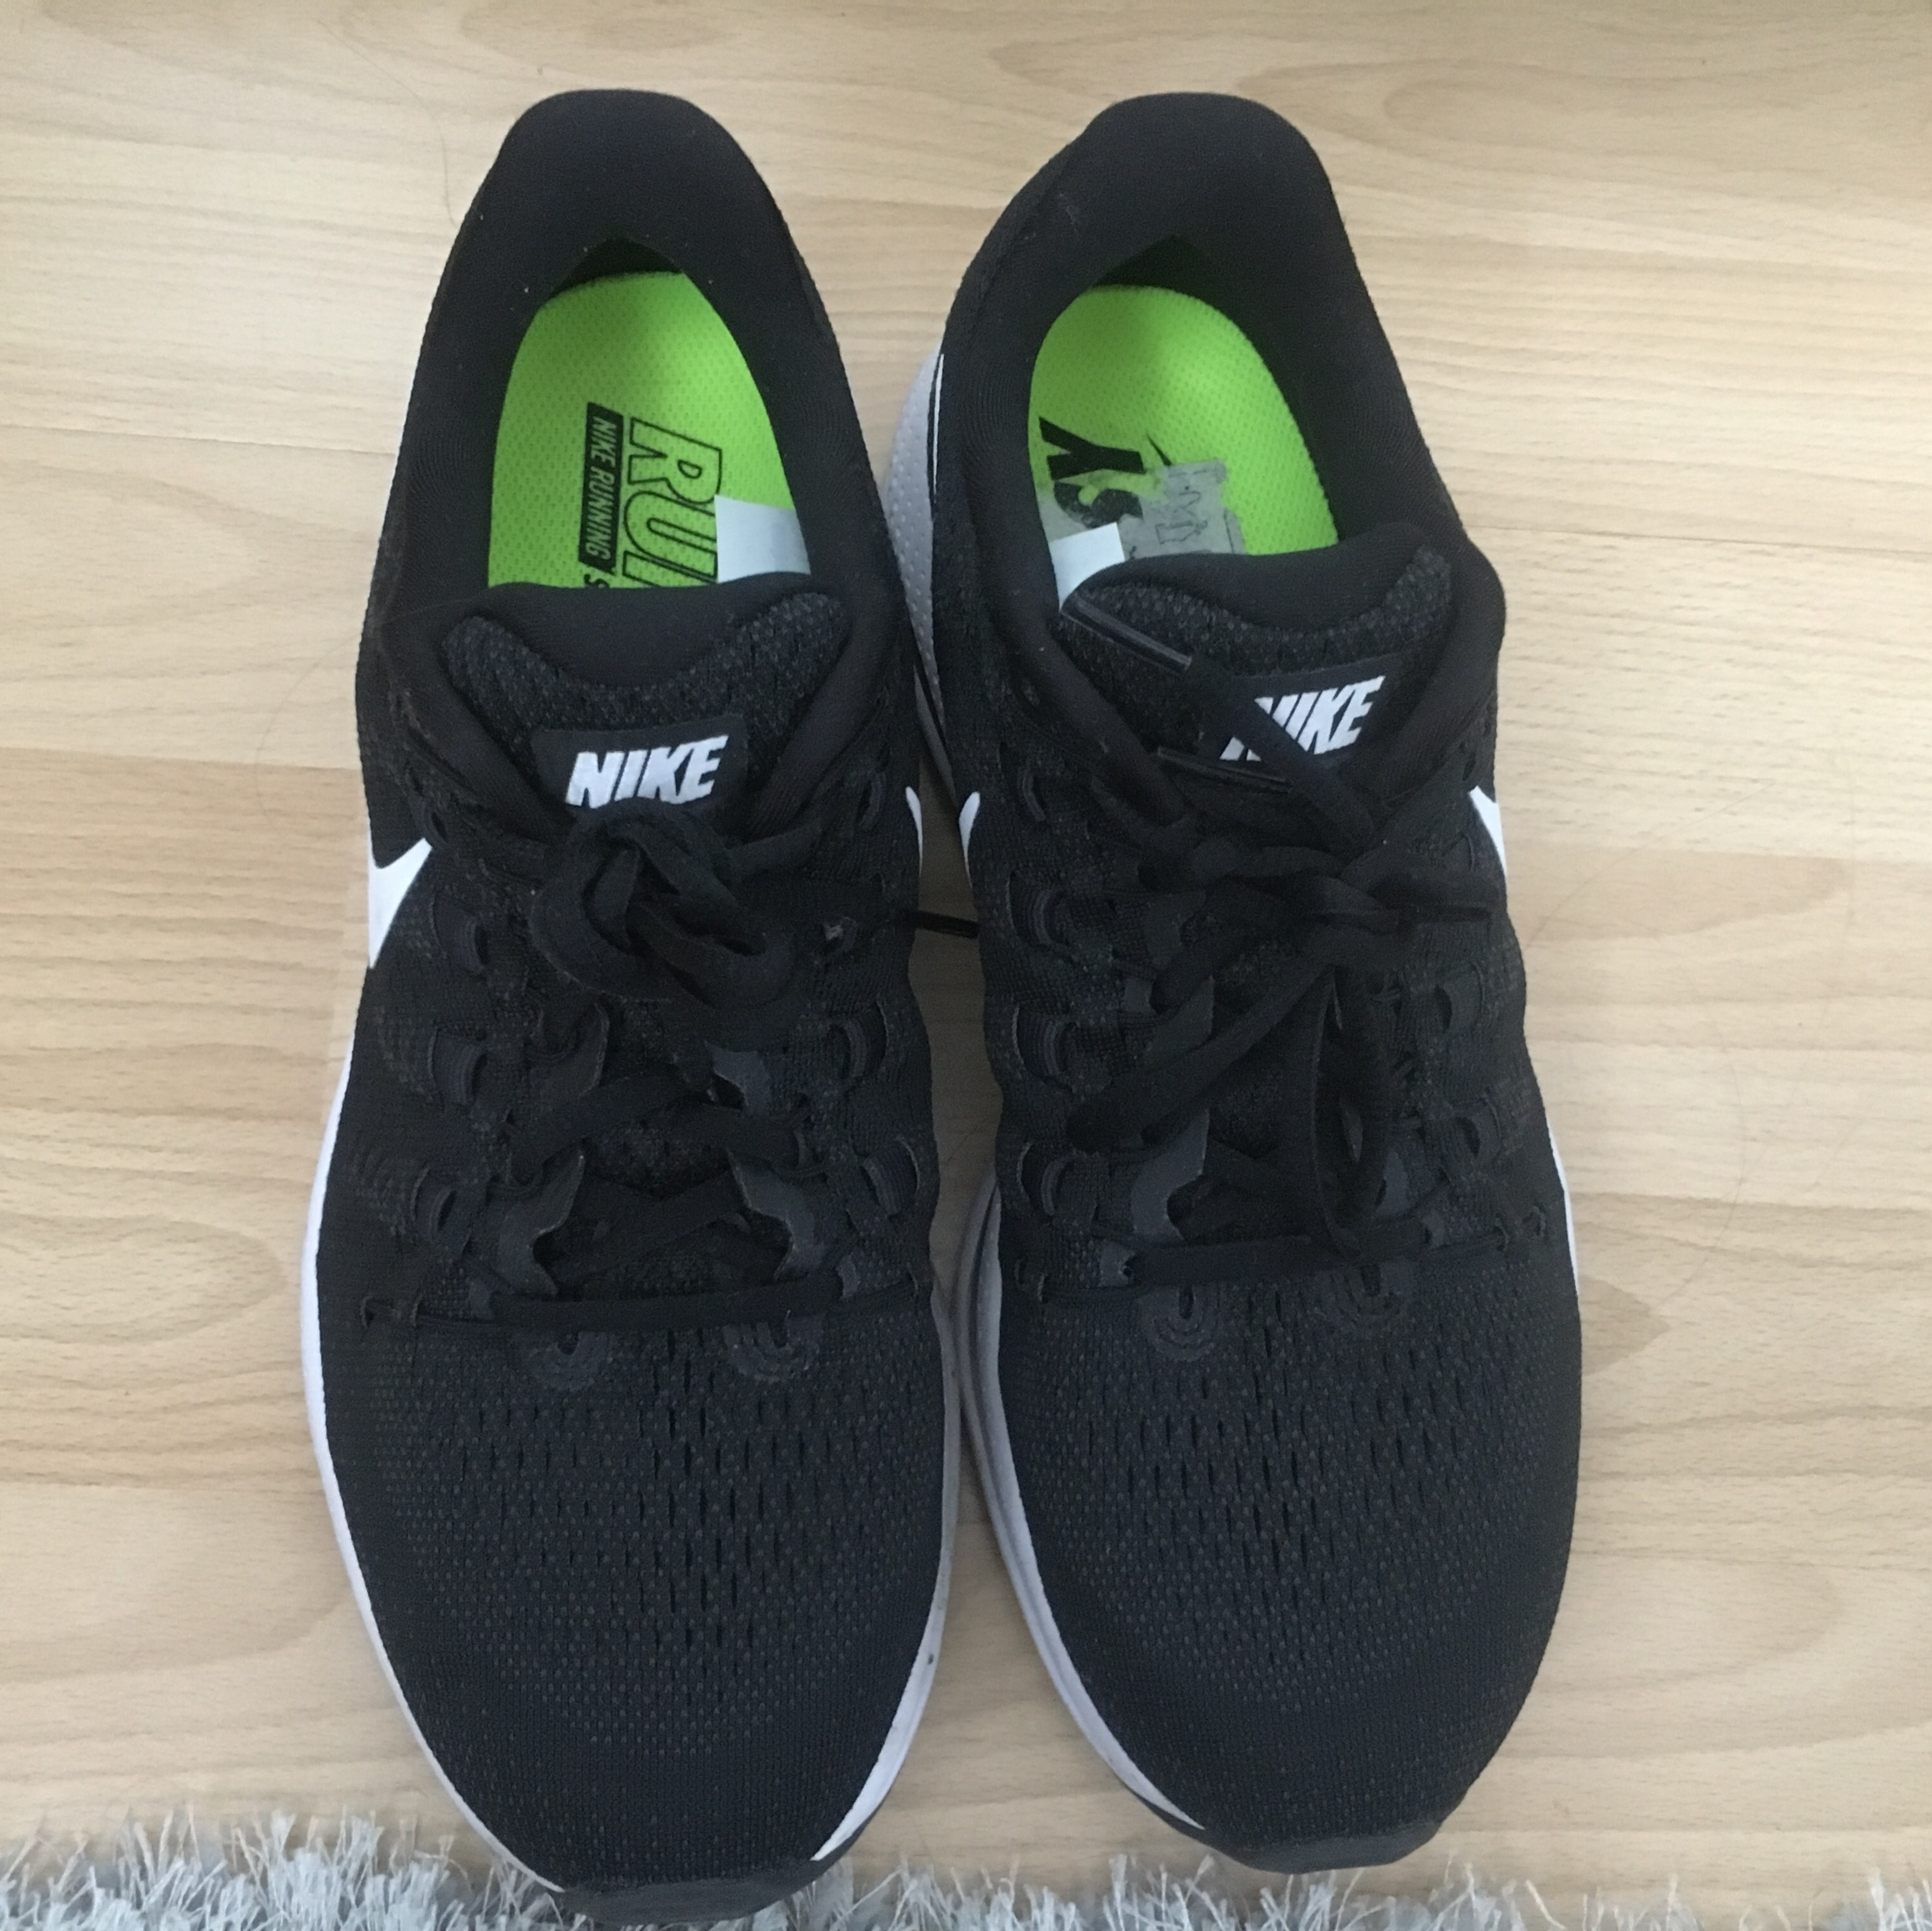 100% original search for genuine new NIKE Zoom run easy trainers. Good condition/ hardly... - Depop